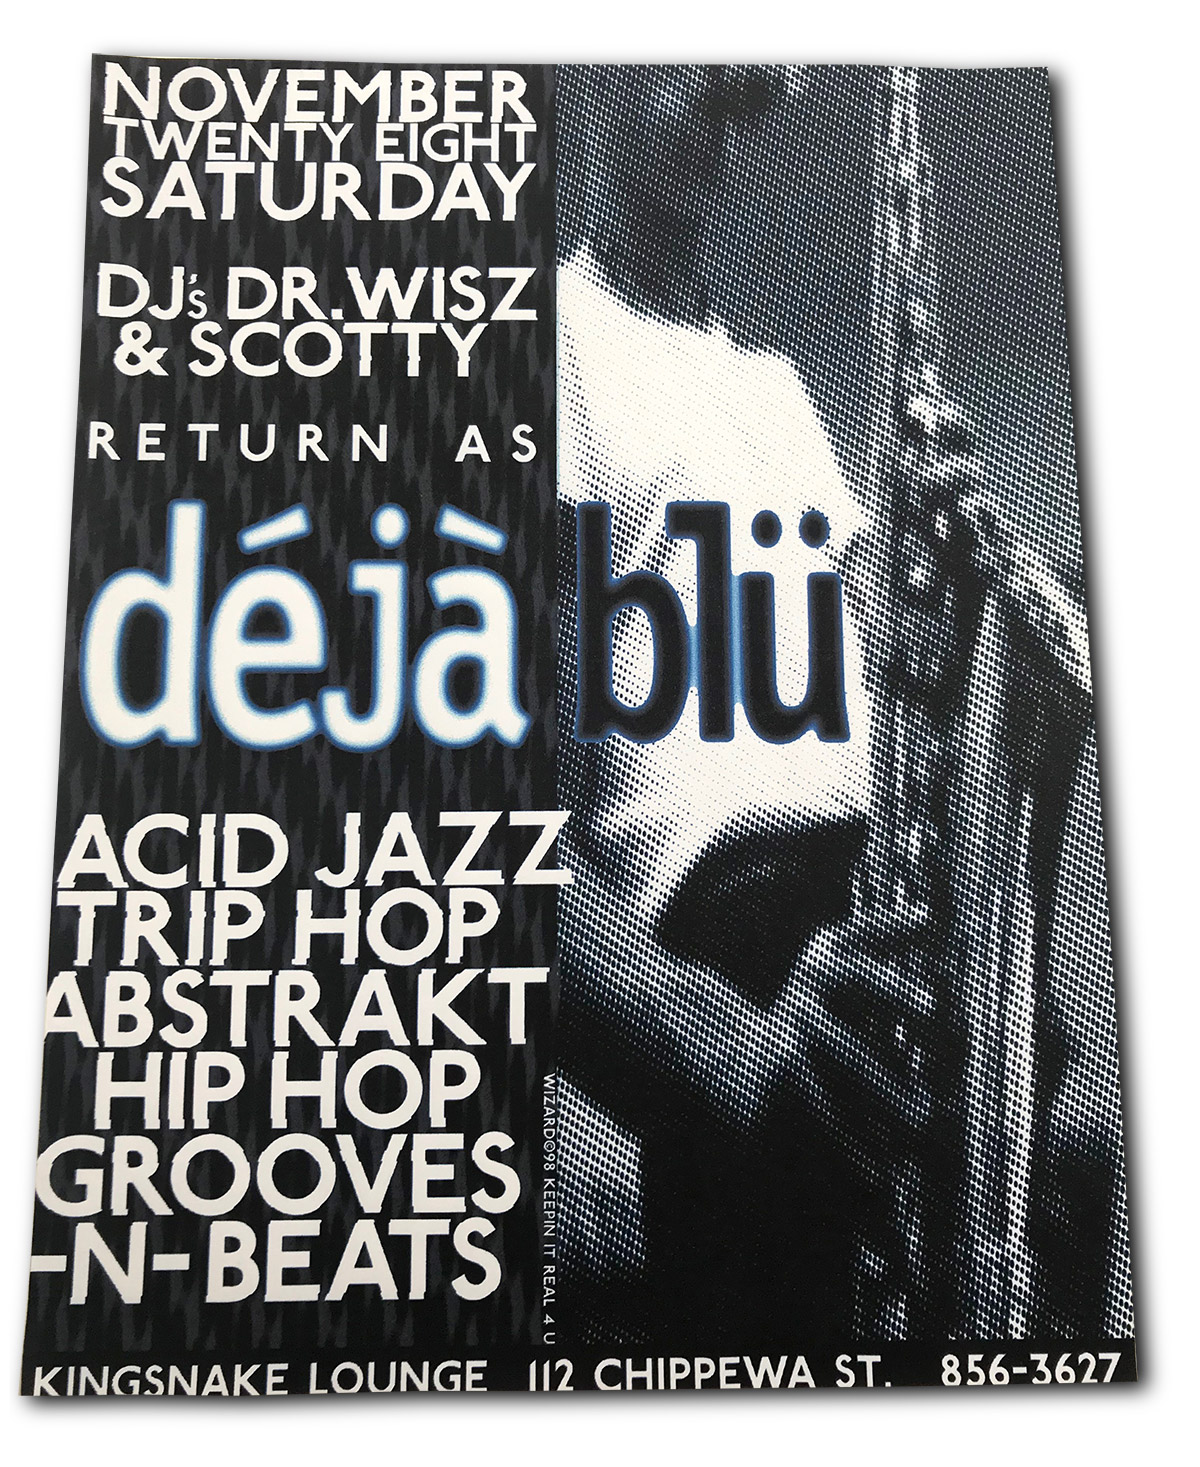 dejablu, kingsnake lounge, dj dr wisz, dj scotty, biggest gig ever, buffalo, ny